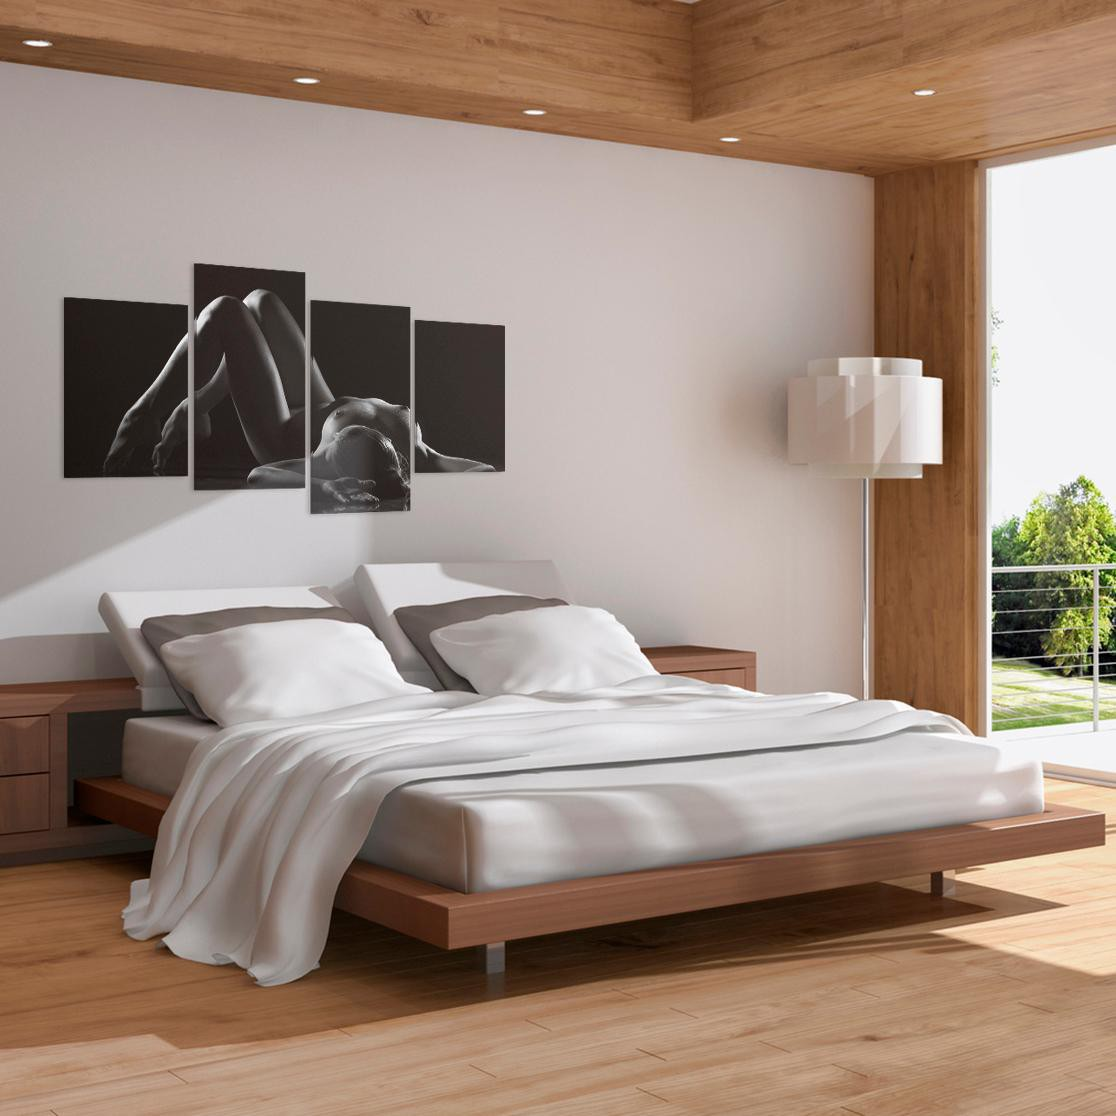 Sensual Canvas Art In Black White For Your Bedroom .